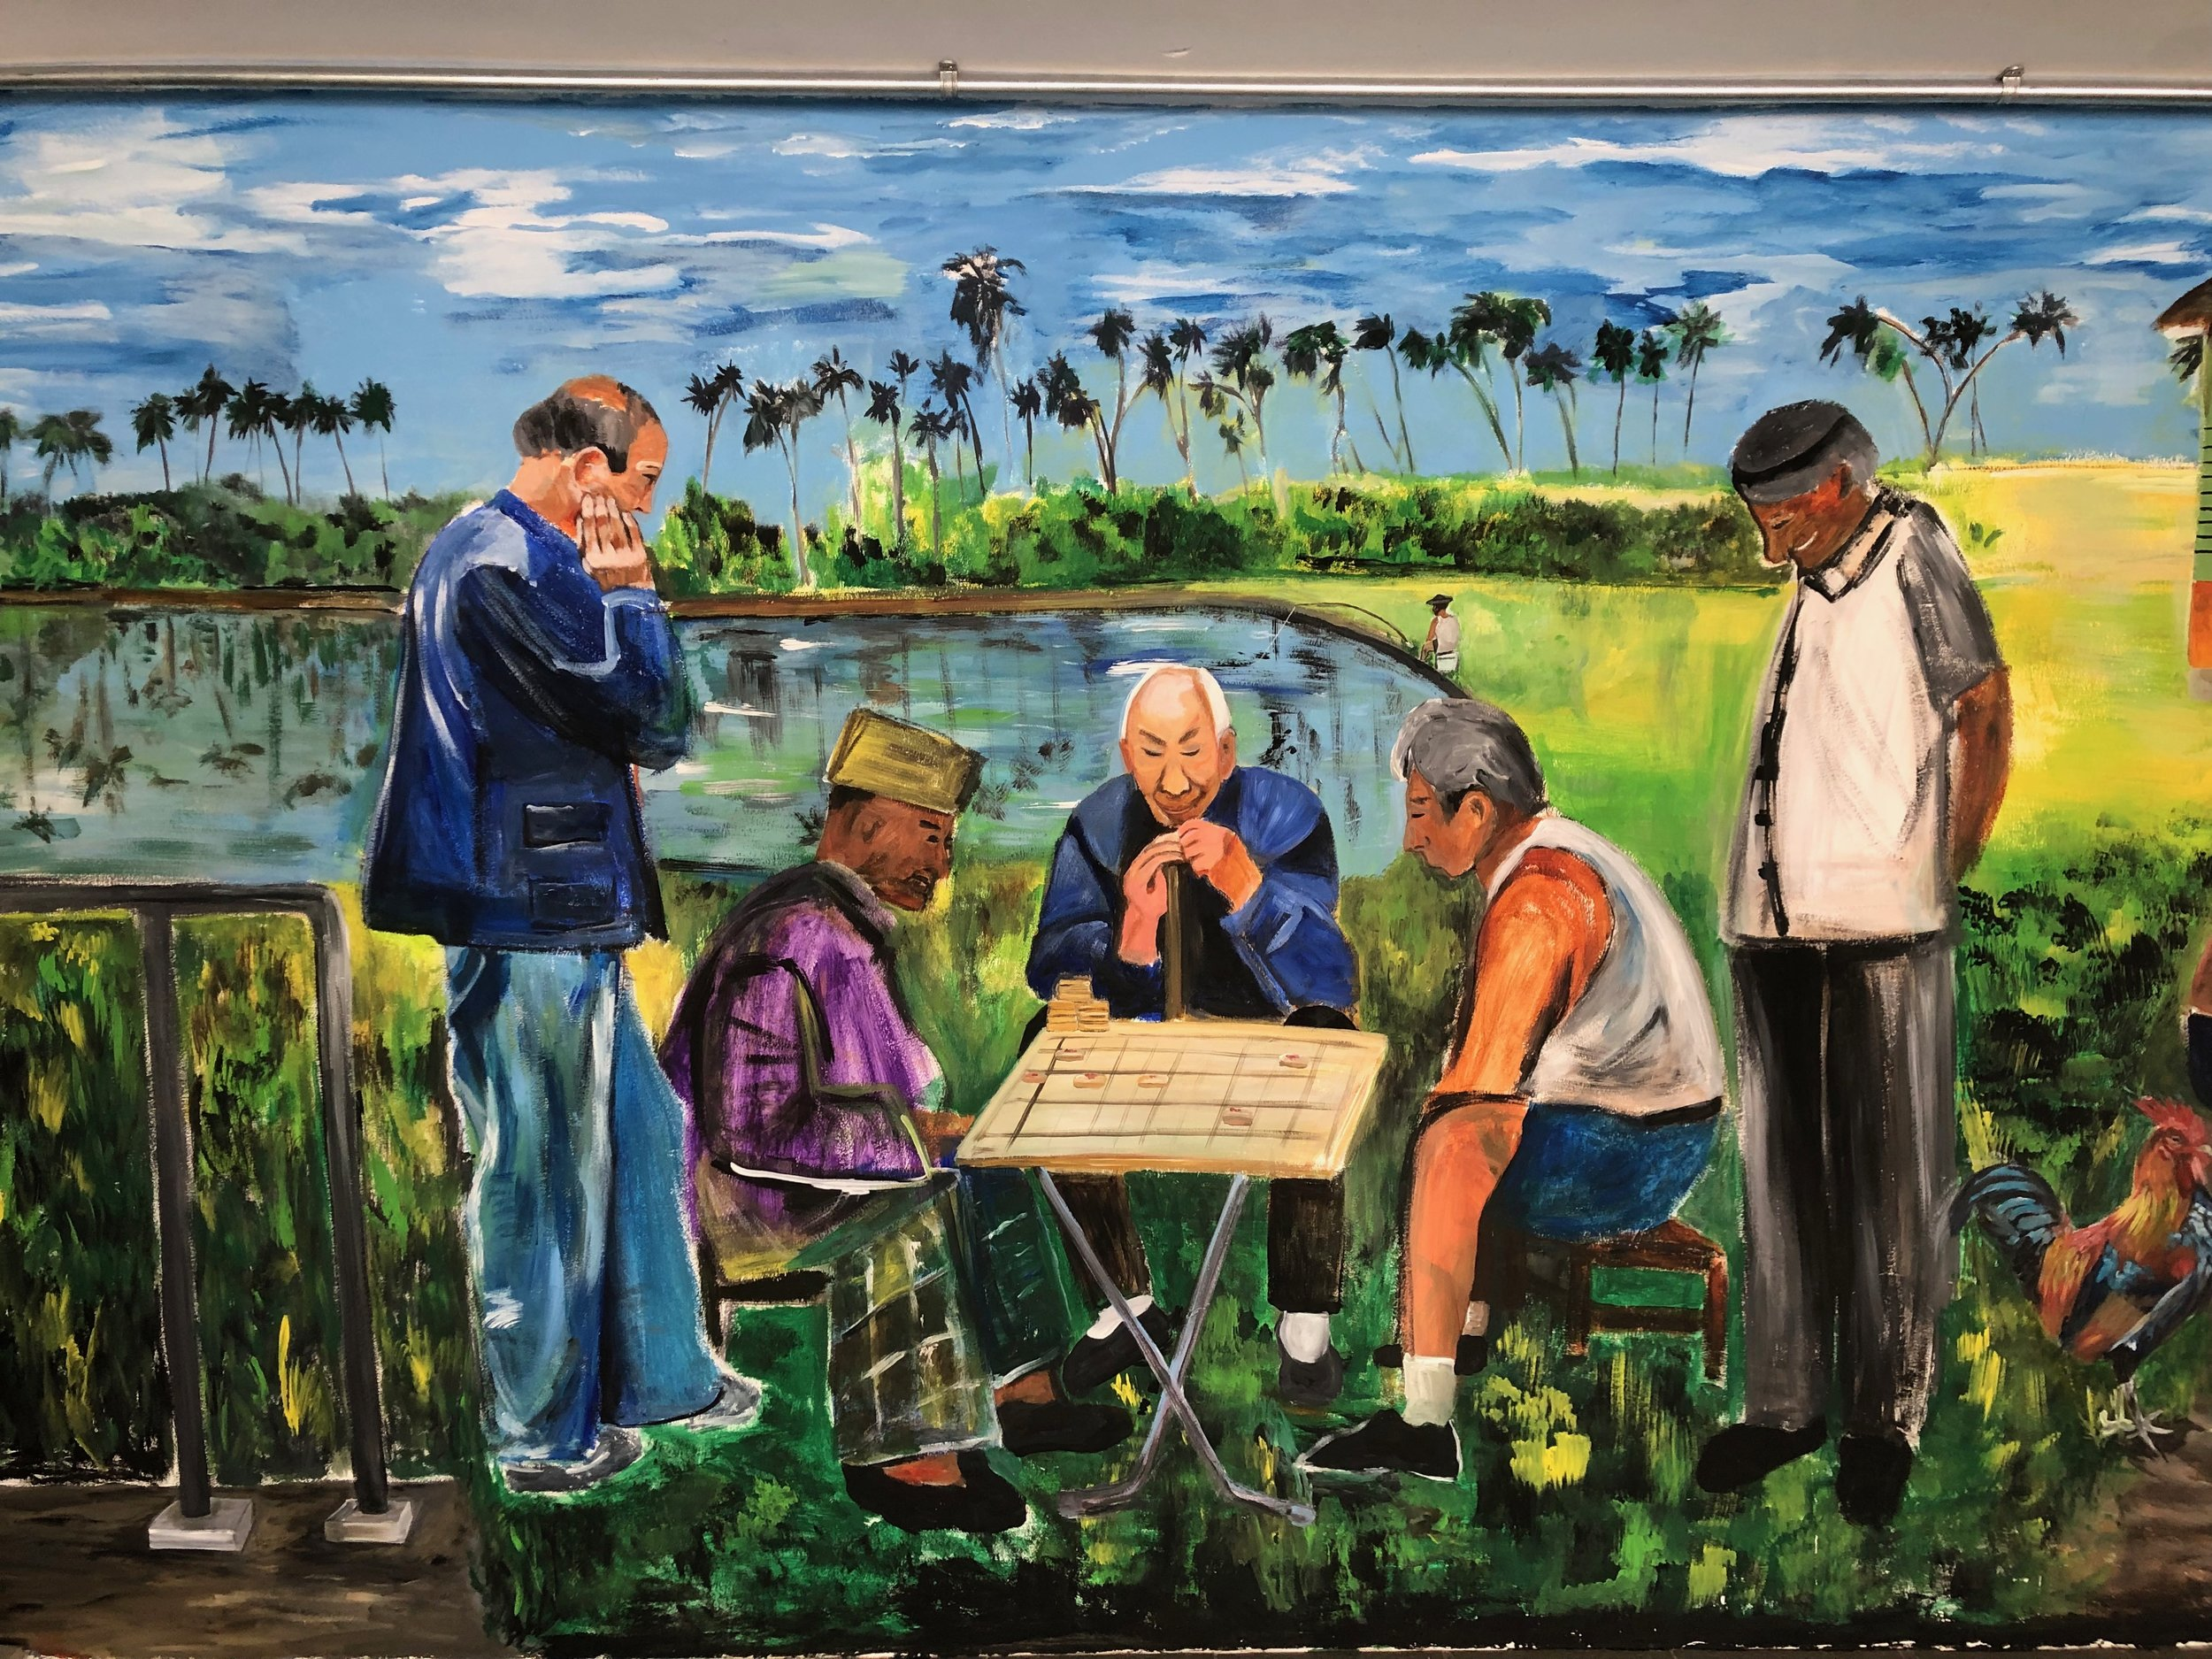 After the pond image, we see the men having a game of chess. This is my second wall painting of chess players (after the one at Chinatown) this time I added more people to depict how the different races lived together in harmony as Singapore is a multi-racial society.